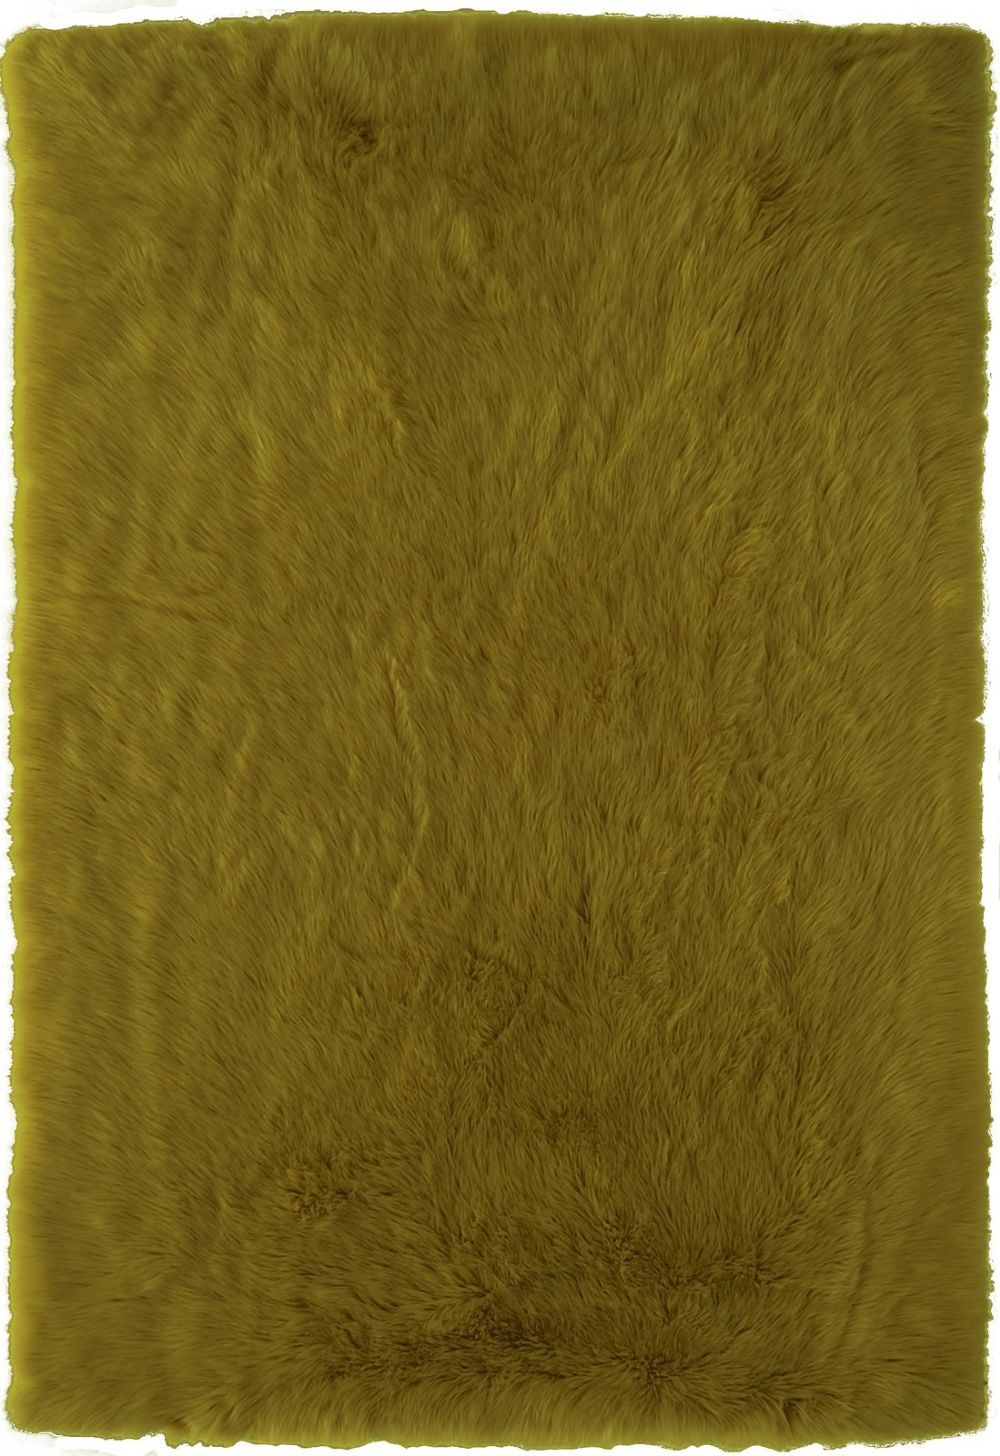 surya yeti shag area rug collection